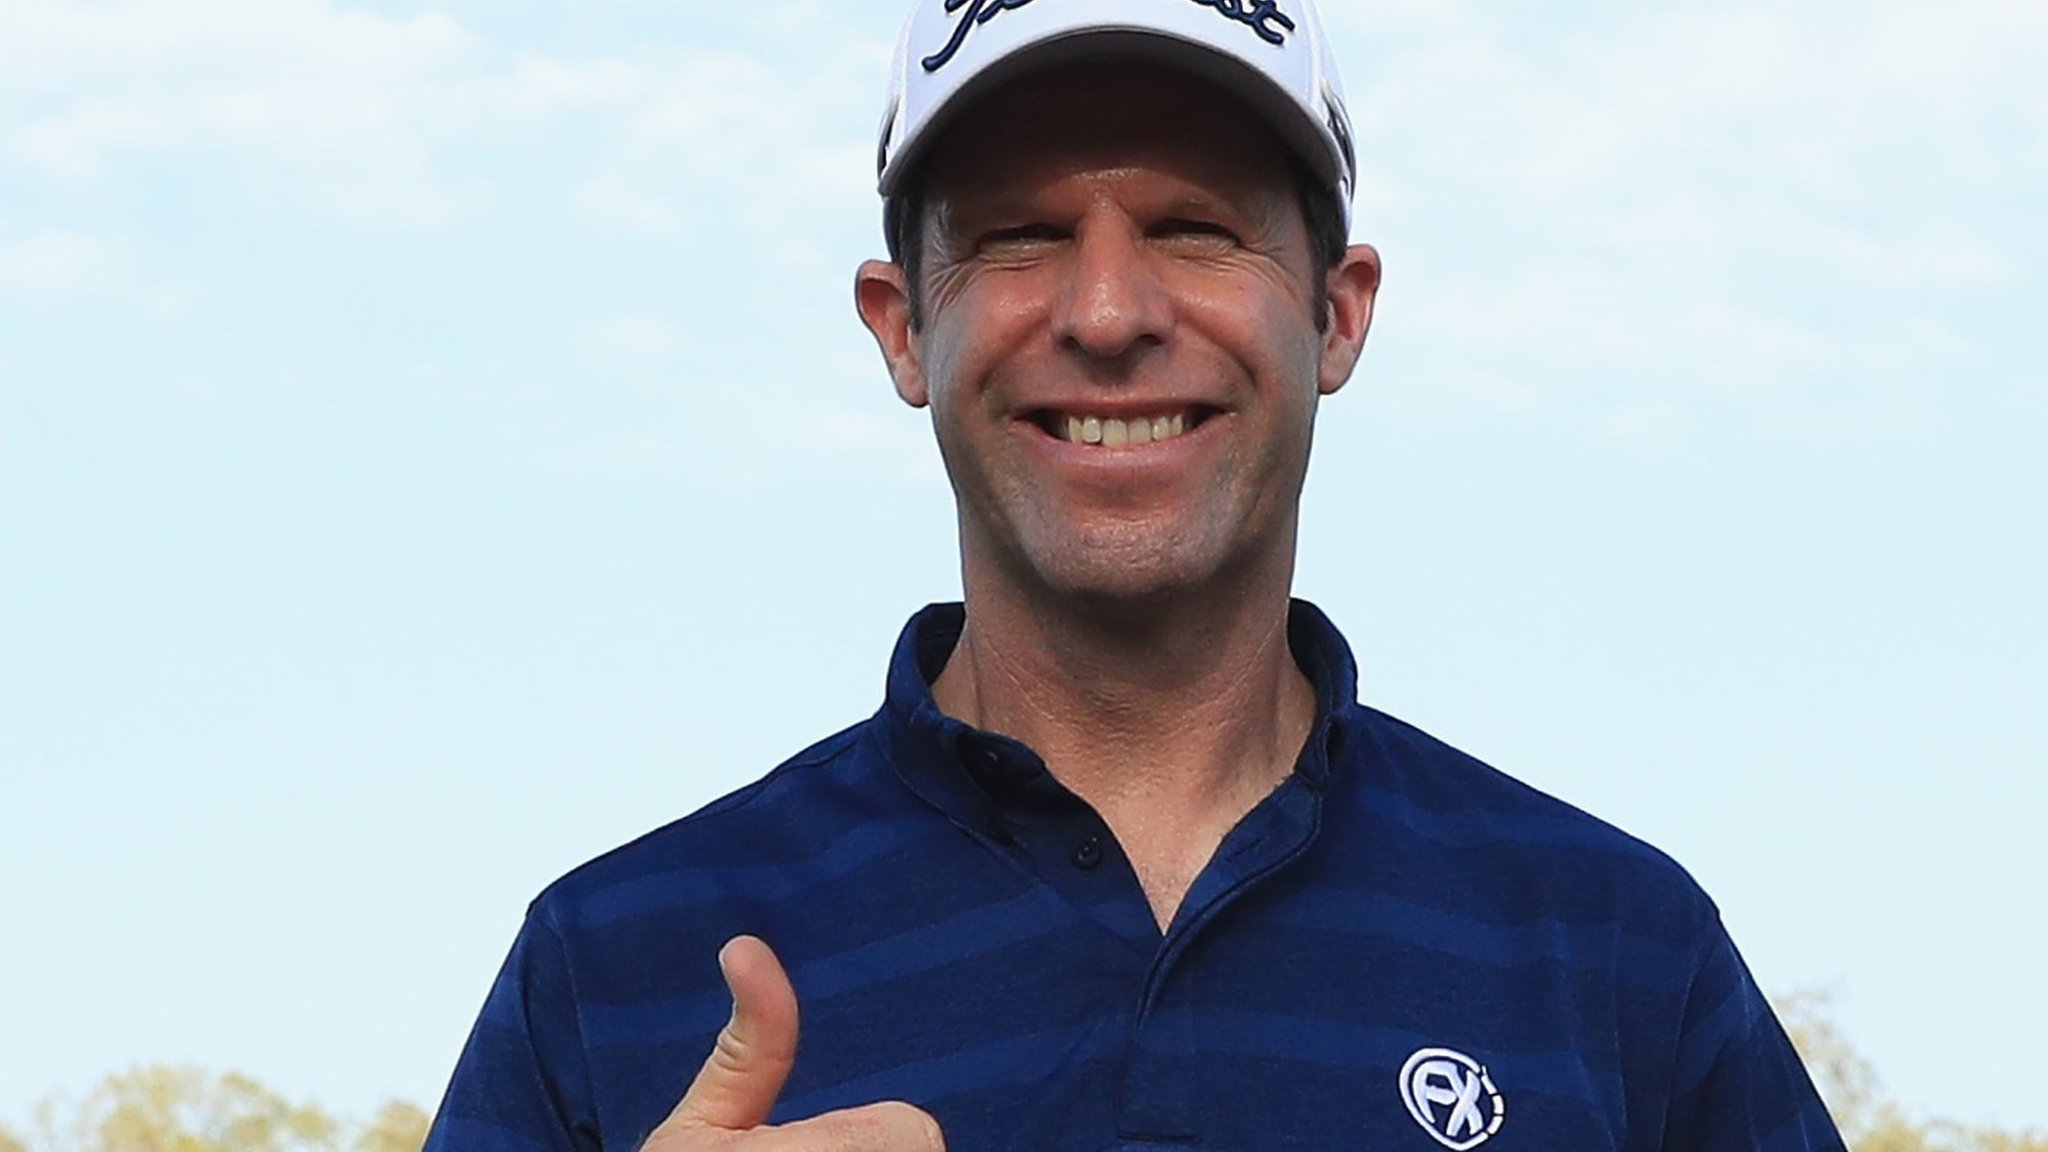 Hassan Trophy: Wales' Bradley Dredge holds share of lead